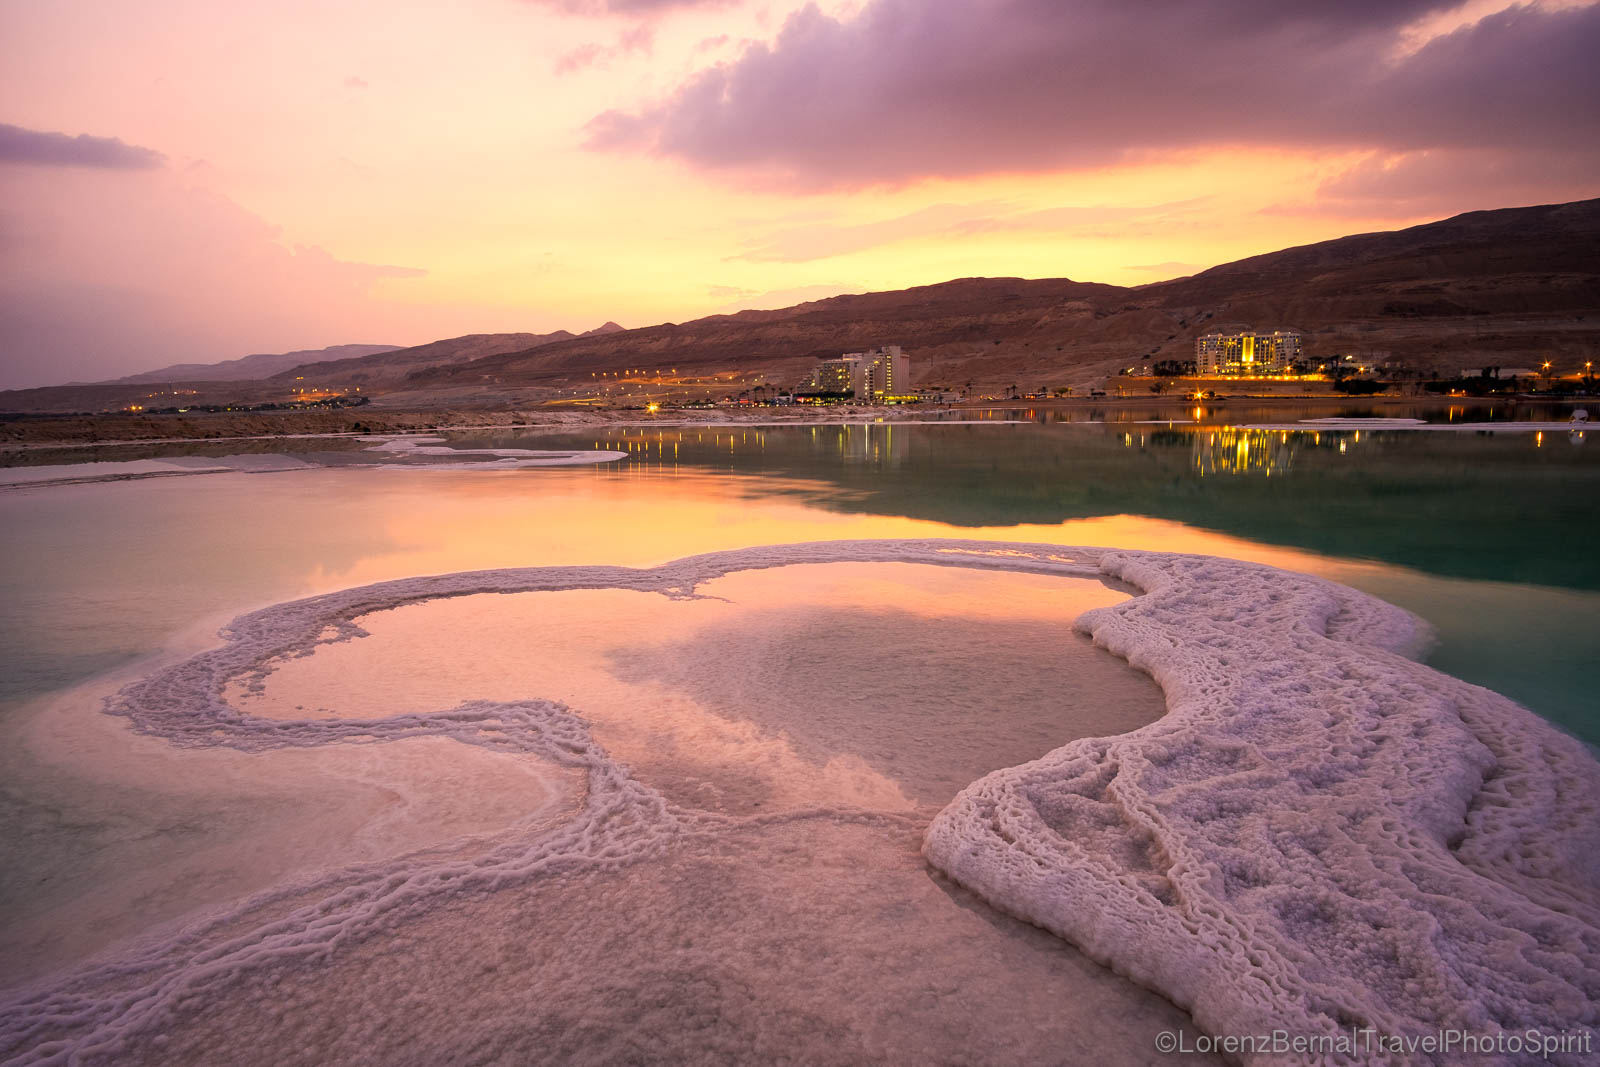 Dead Sea Israel Photo Fine Art Photography The Dead Sea Four Saulty Stones Nature Photography Israel Photography